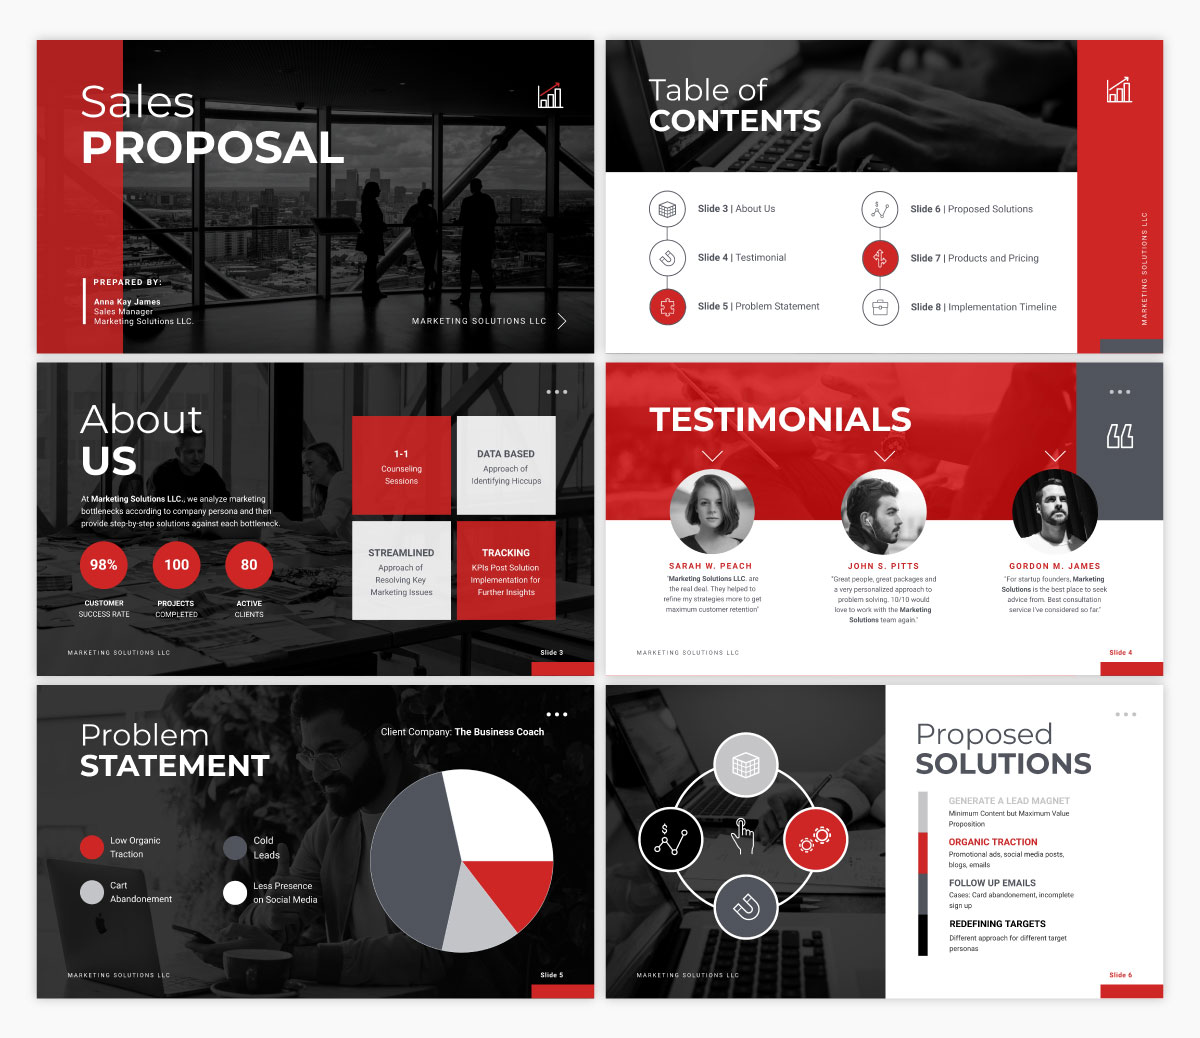 A sales presentation template available in Visme.